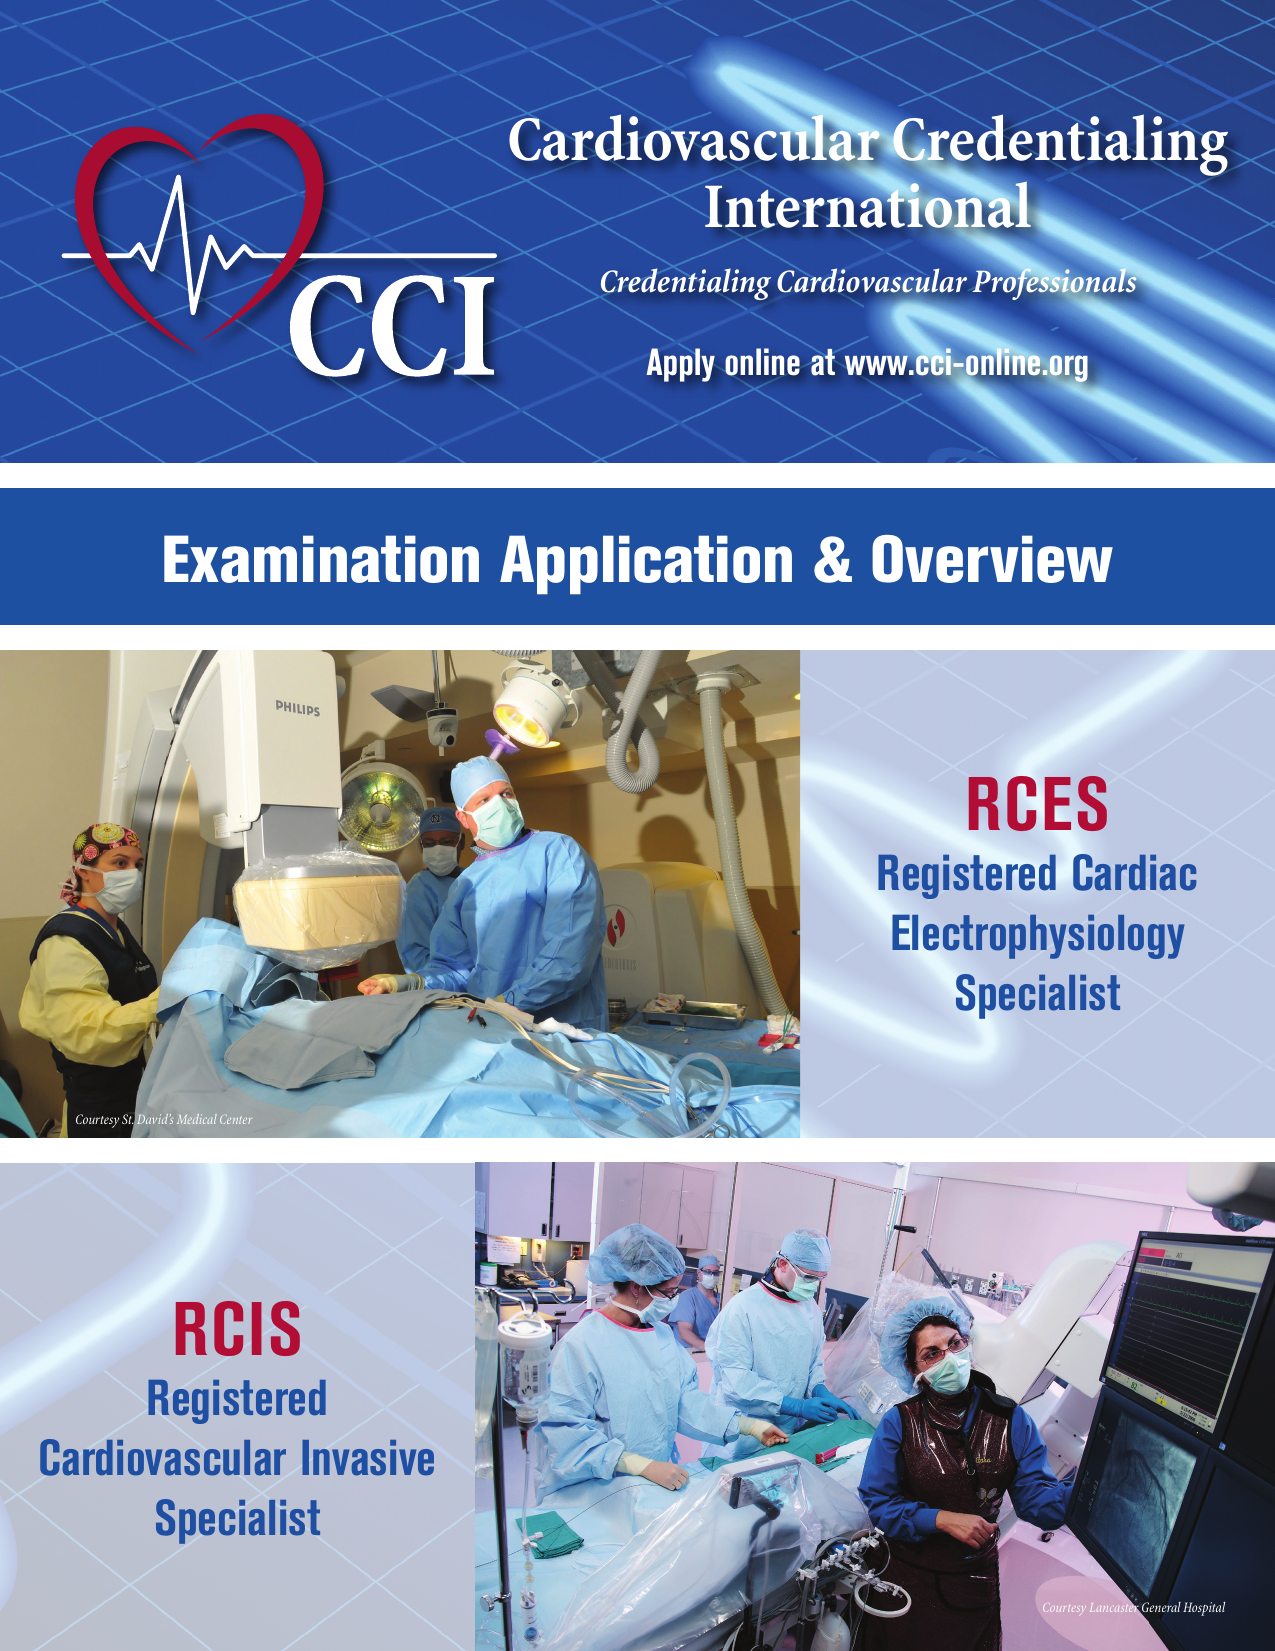 Rces Rcis Cardiovascular Credentialing International